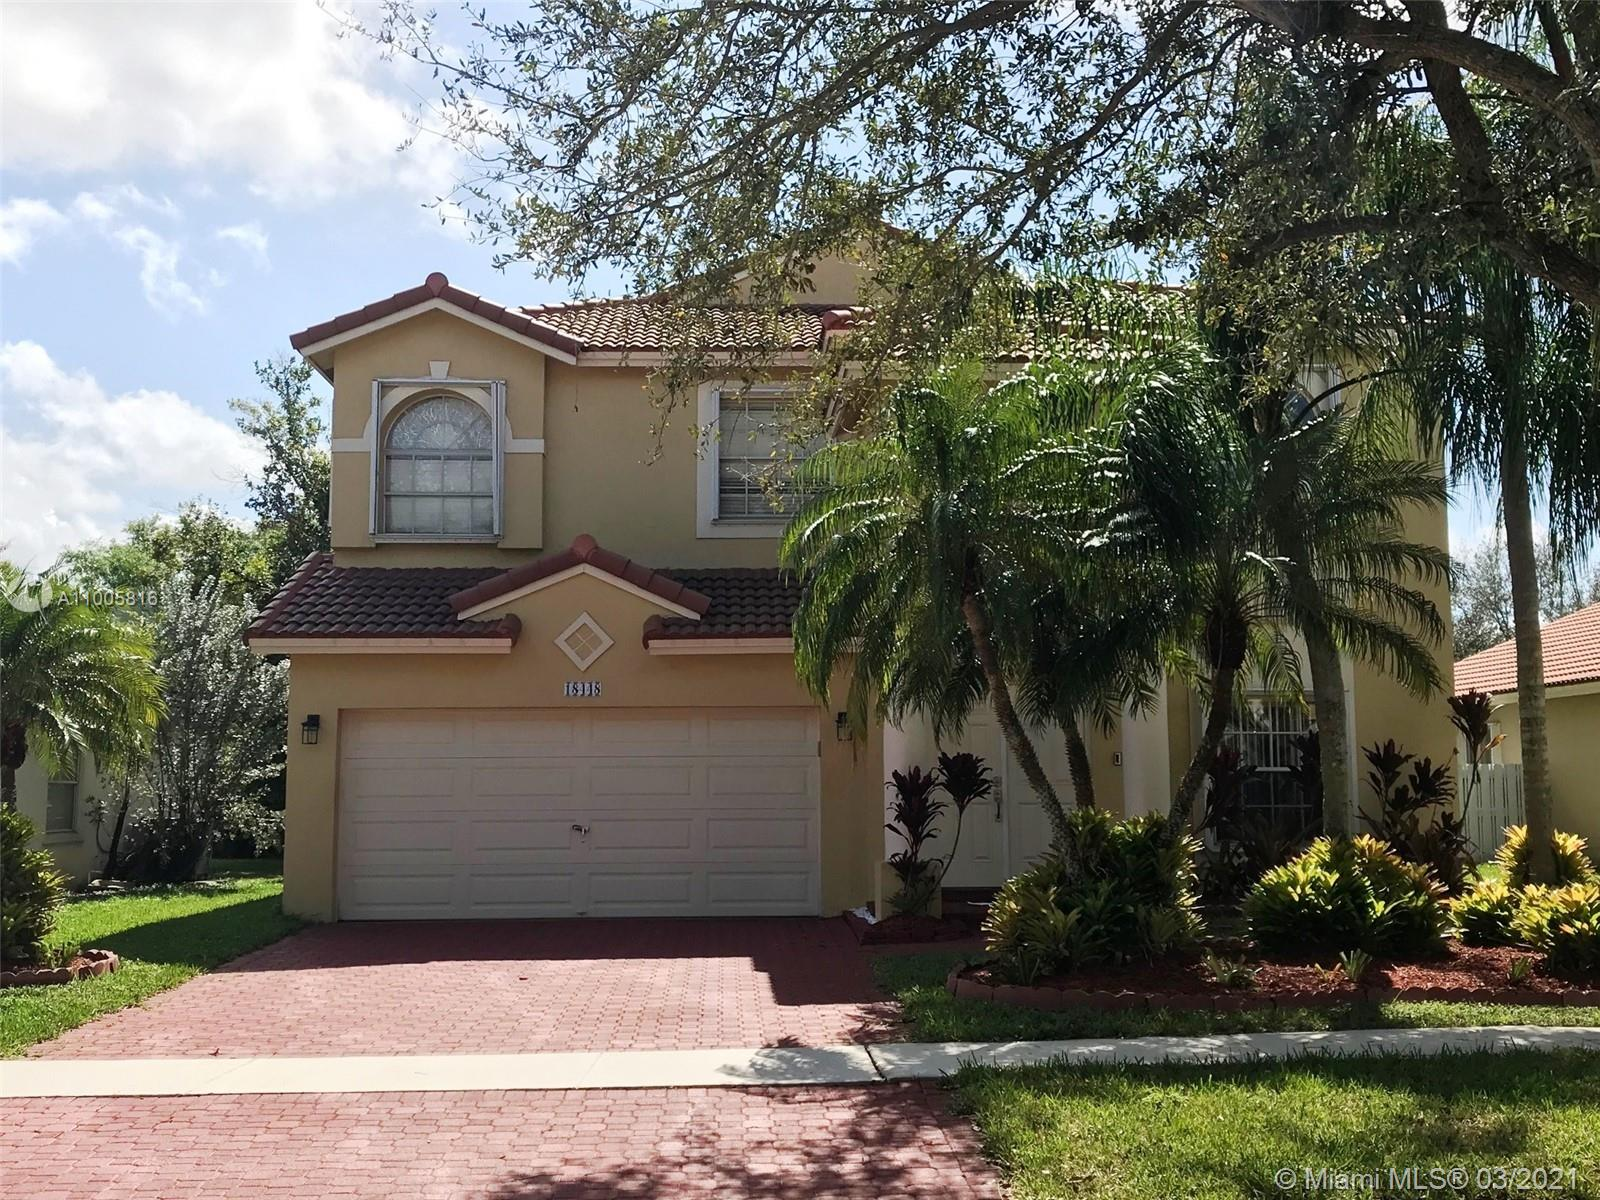 Spectacular location in the heart of Pembroke Pines. Welcome to this beautiful & spacious 5/3 two story home with a nice screened-in patio with in-ground pool was diamond bright 2014 & night pool lights. New Roof  (2018), House Interior painted 2018, Water Heater was replaced 2013. Ceiling painted and update to smooth finish , Accordion Hurricane Shutters & Impact Glass on Sliding Door, Brick Driveway painted ,  Has a Family Room, Formal Dining, Breakfast Nook, Living/Family Room, Laundry.Utility Room, Rooms have Energy Efficient Remote Ceiling Fans, Pool LED Lightning, New Recessed Lightning with Dimmer Kitchen/Living Room, Garage remote Control Ceiling Fan. Master Bathroom beautiful entrance to a Roman tub, His & Her Sinks, plenty of cabinet space. Smoke alarms, Tile, Wood floors & Rug.